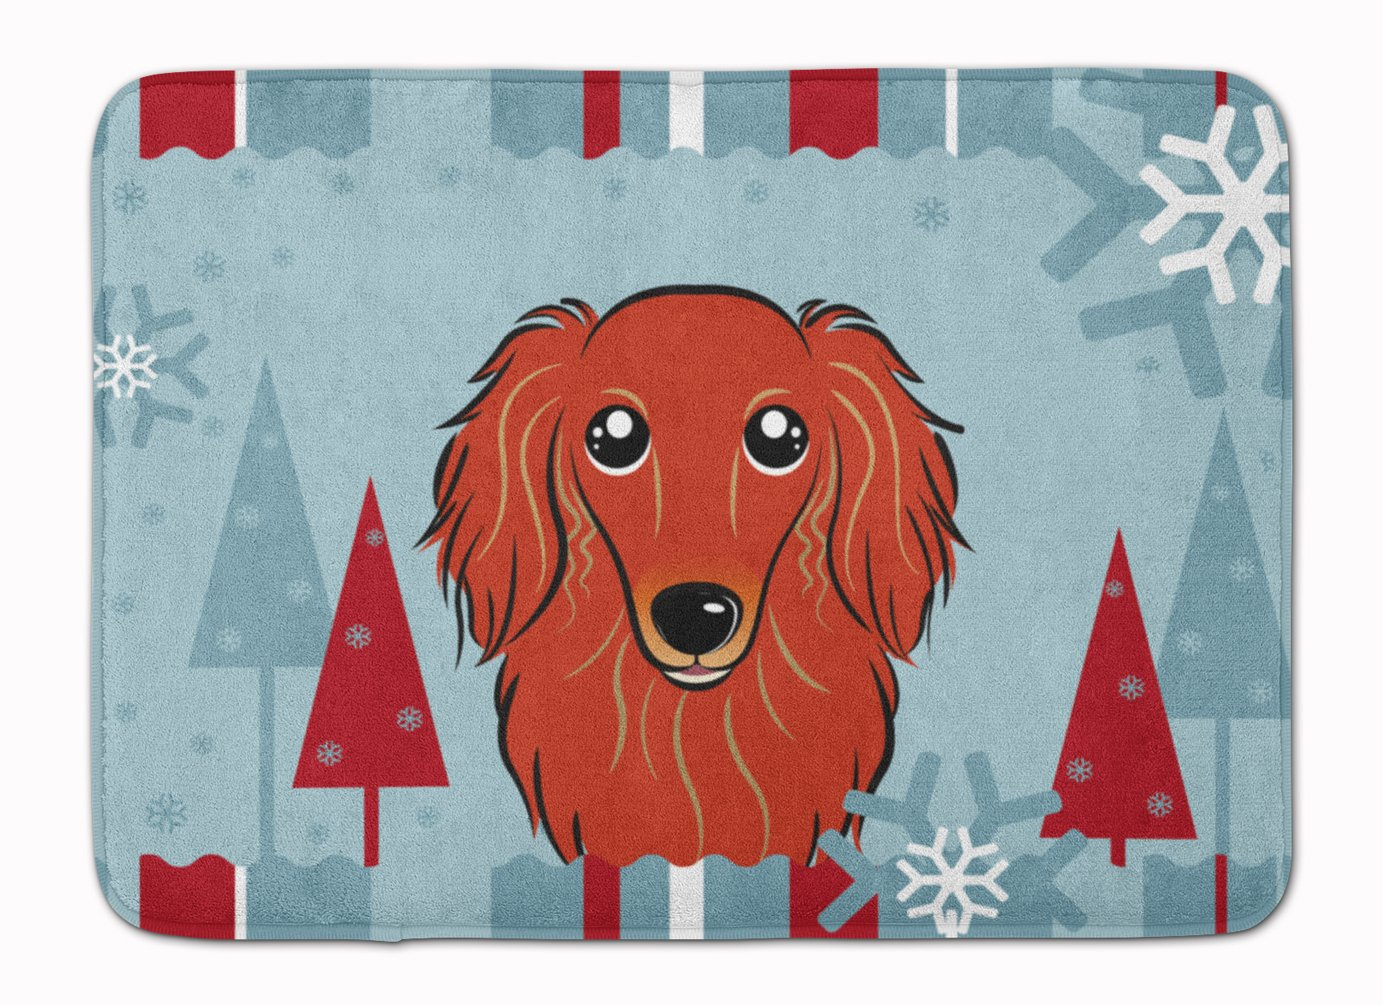 Carolines Treasures Winter Holiday Longhair Red Dachshund Floor Mat 19 x 27 Multicolor